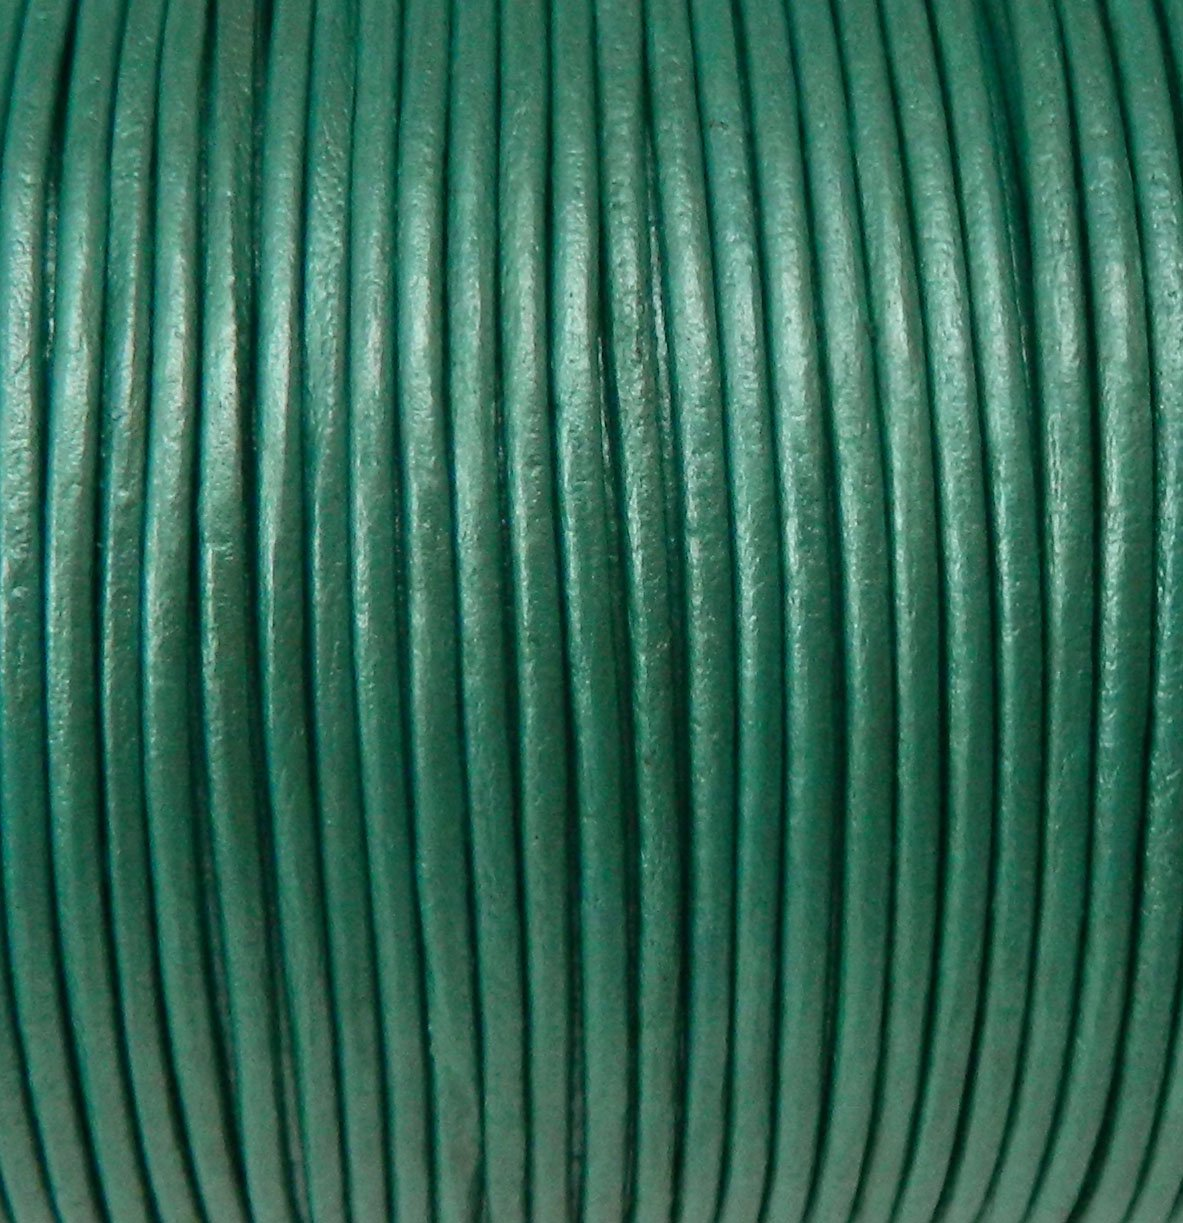 Imported India Leather Cord 2mm Round 5 Yards Metallic Light Teal Green